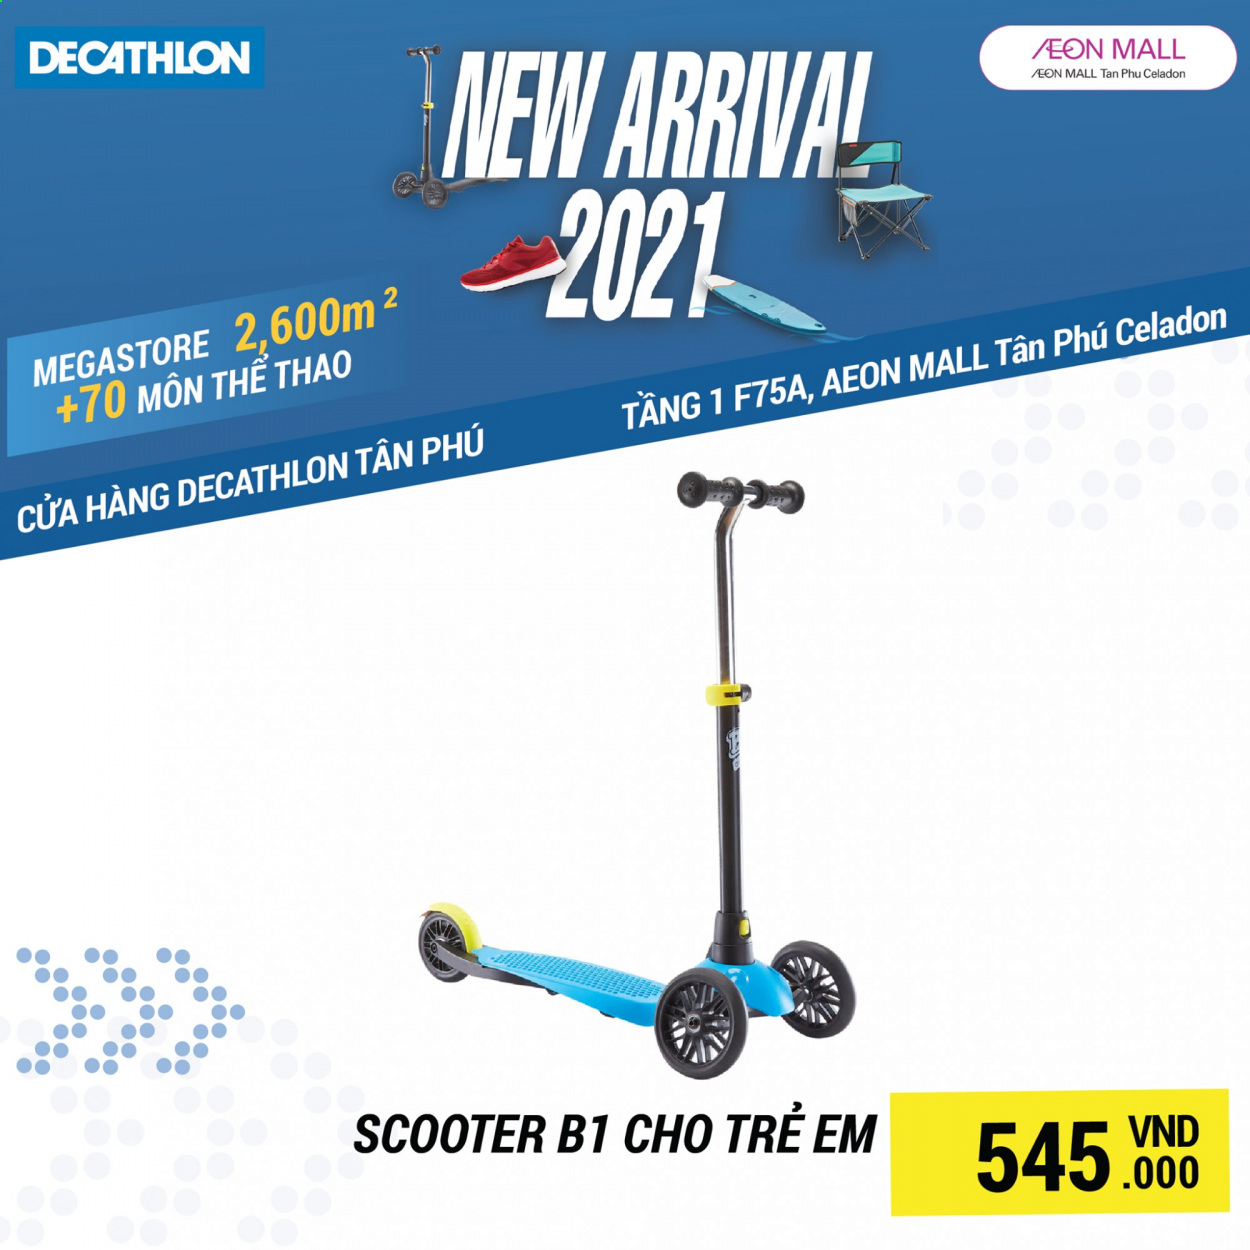 Decathlon offer . Page 2.